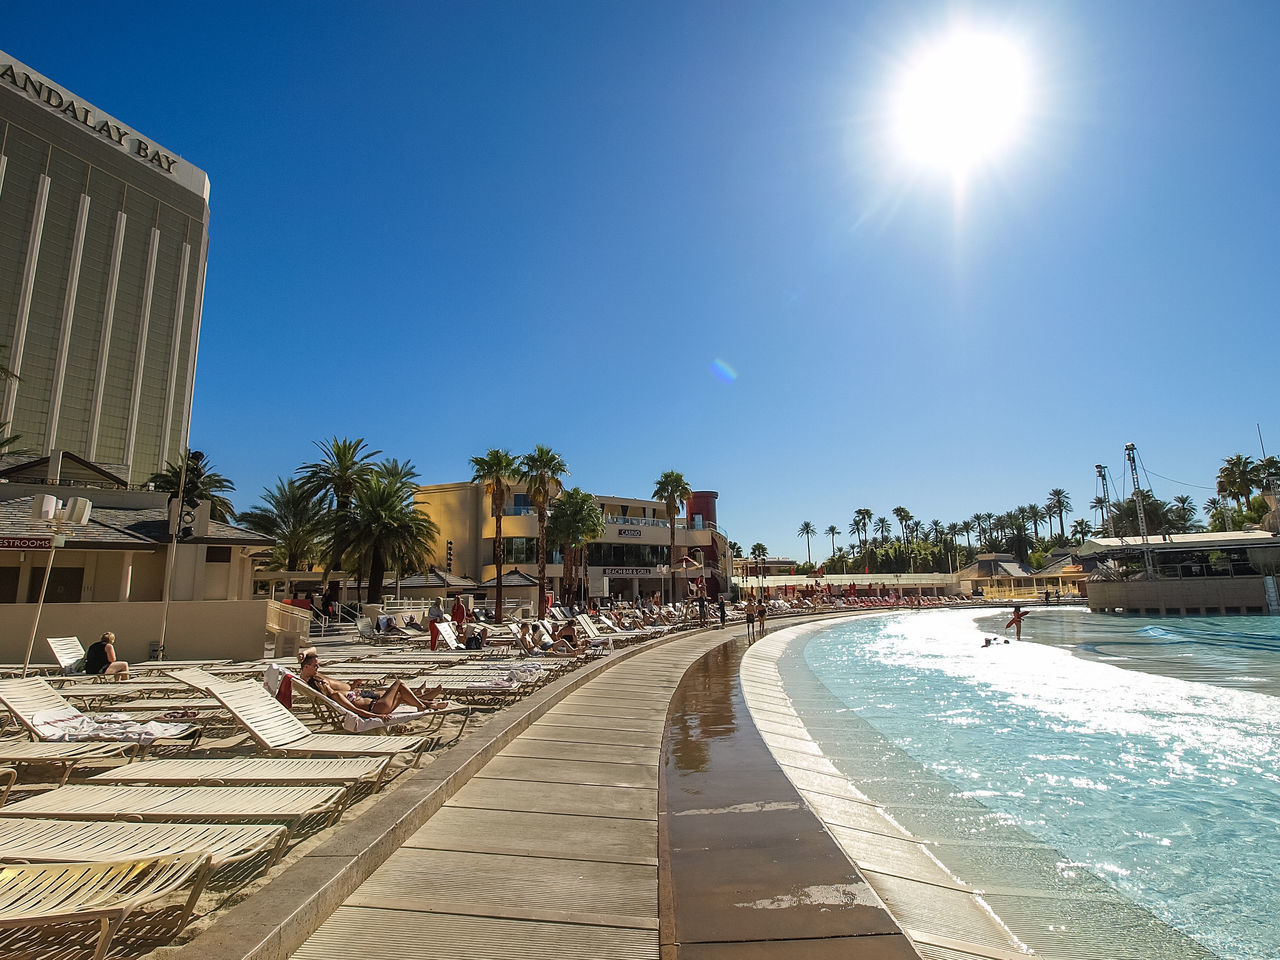 swimming pool, sunlight, palm tree, sun, water, architecture, outdoors, built structure, blue, clear sky, tree, summer, building exterior, day, sky, no people